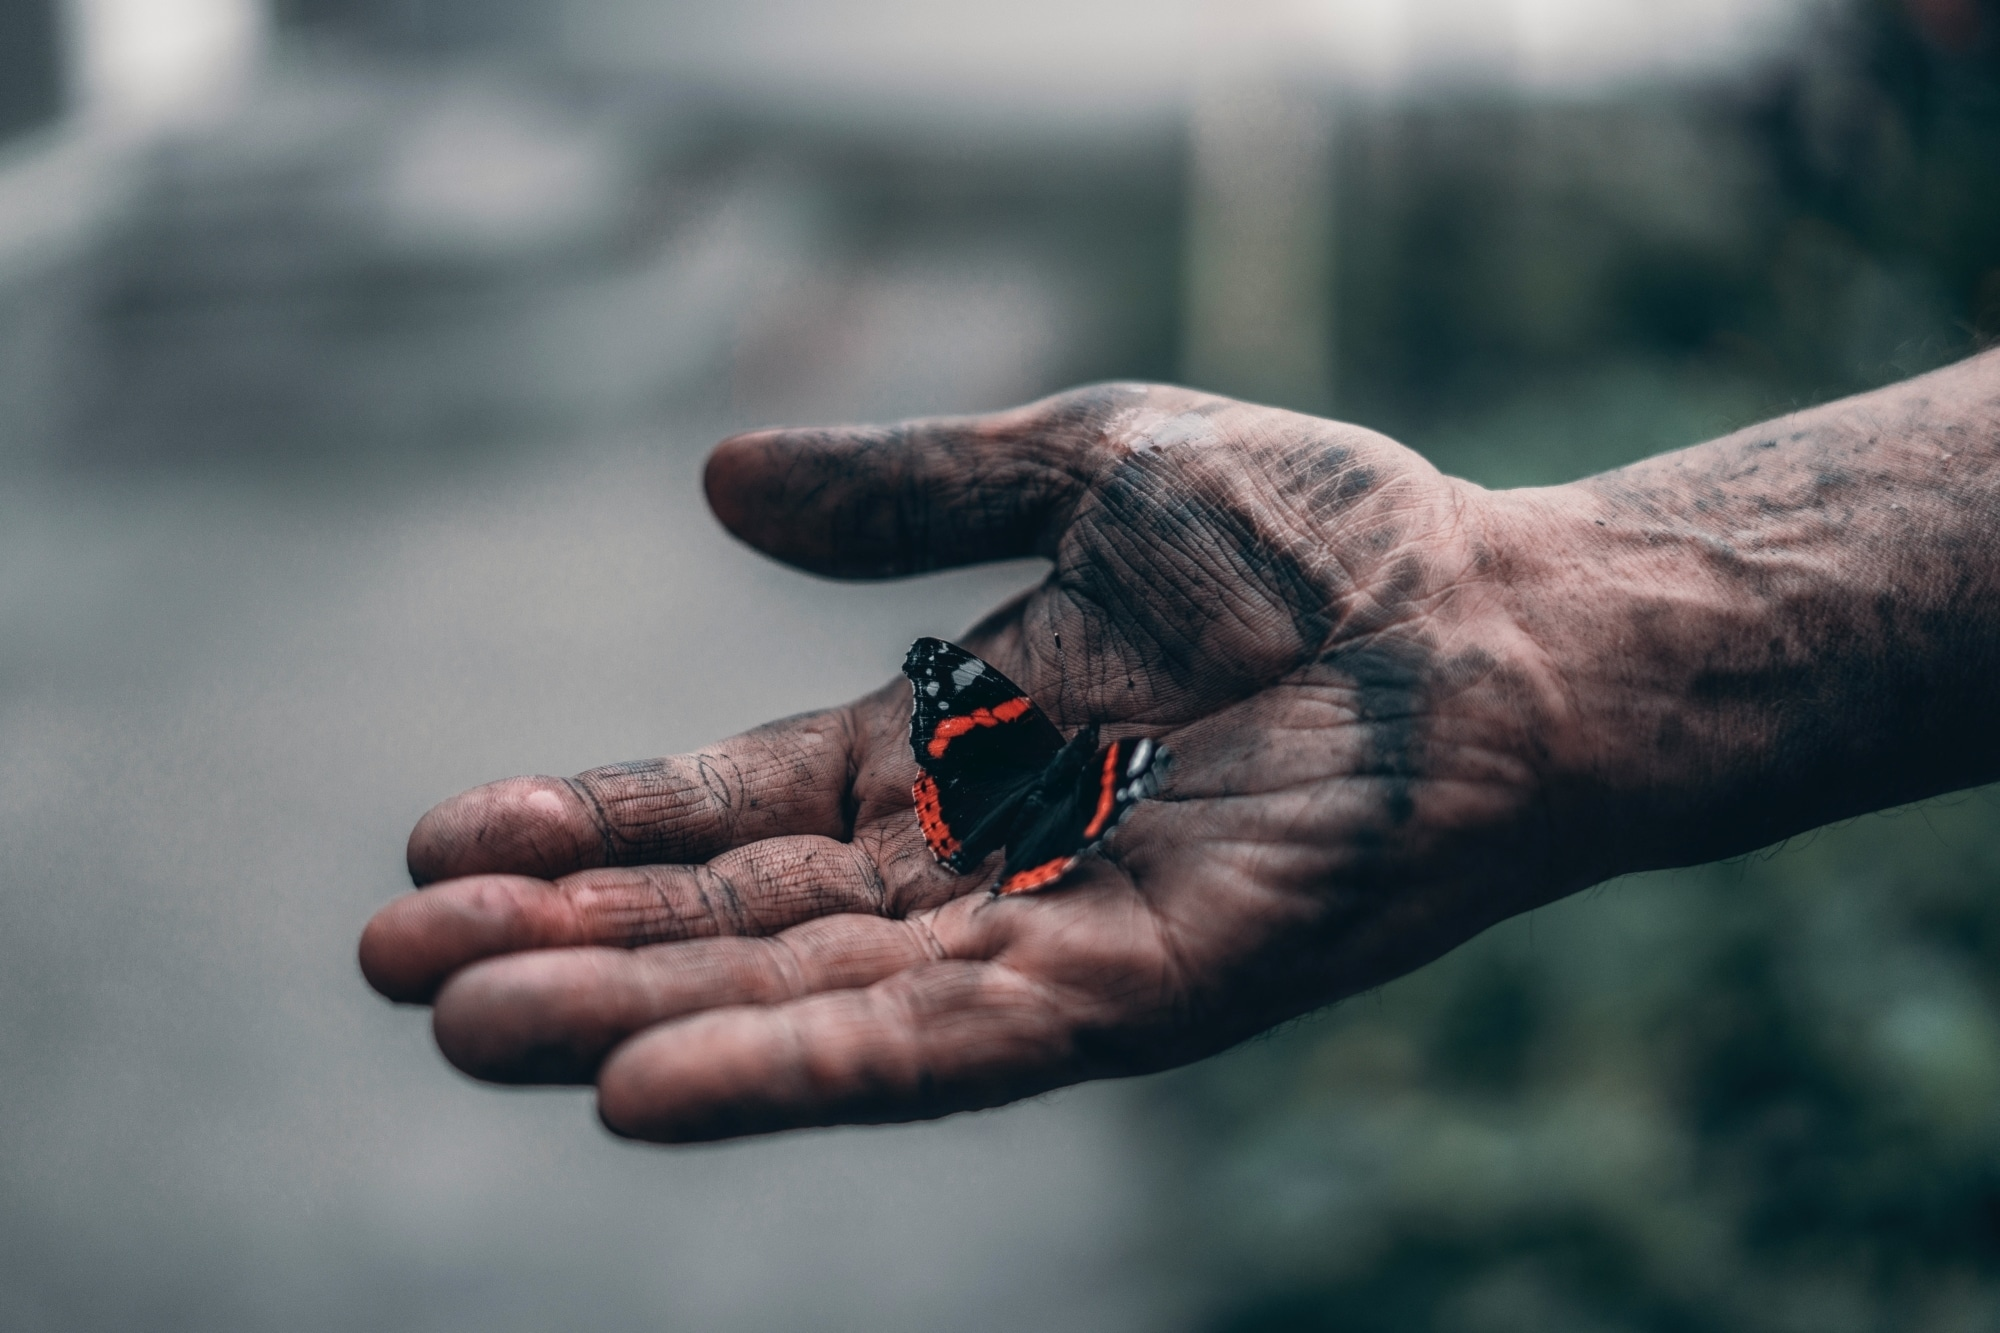 black and red butterfly on person s hand 3979732 | Ewa de Saporta